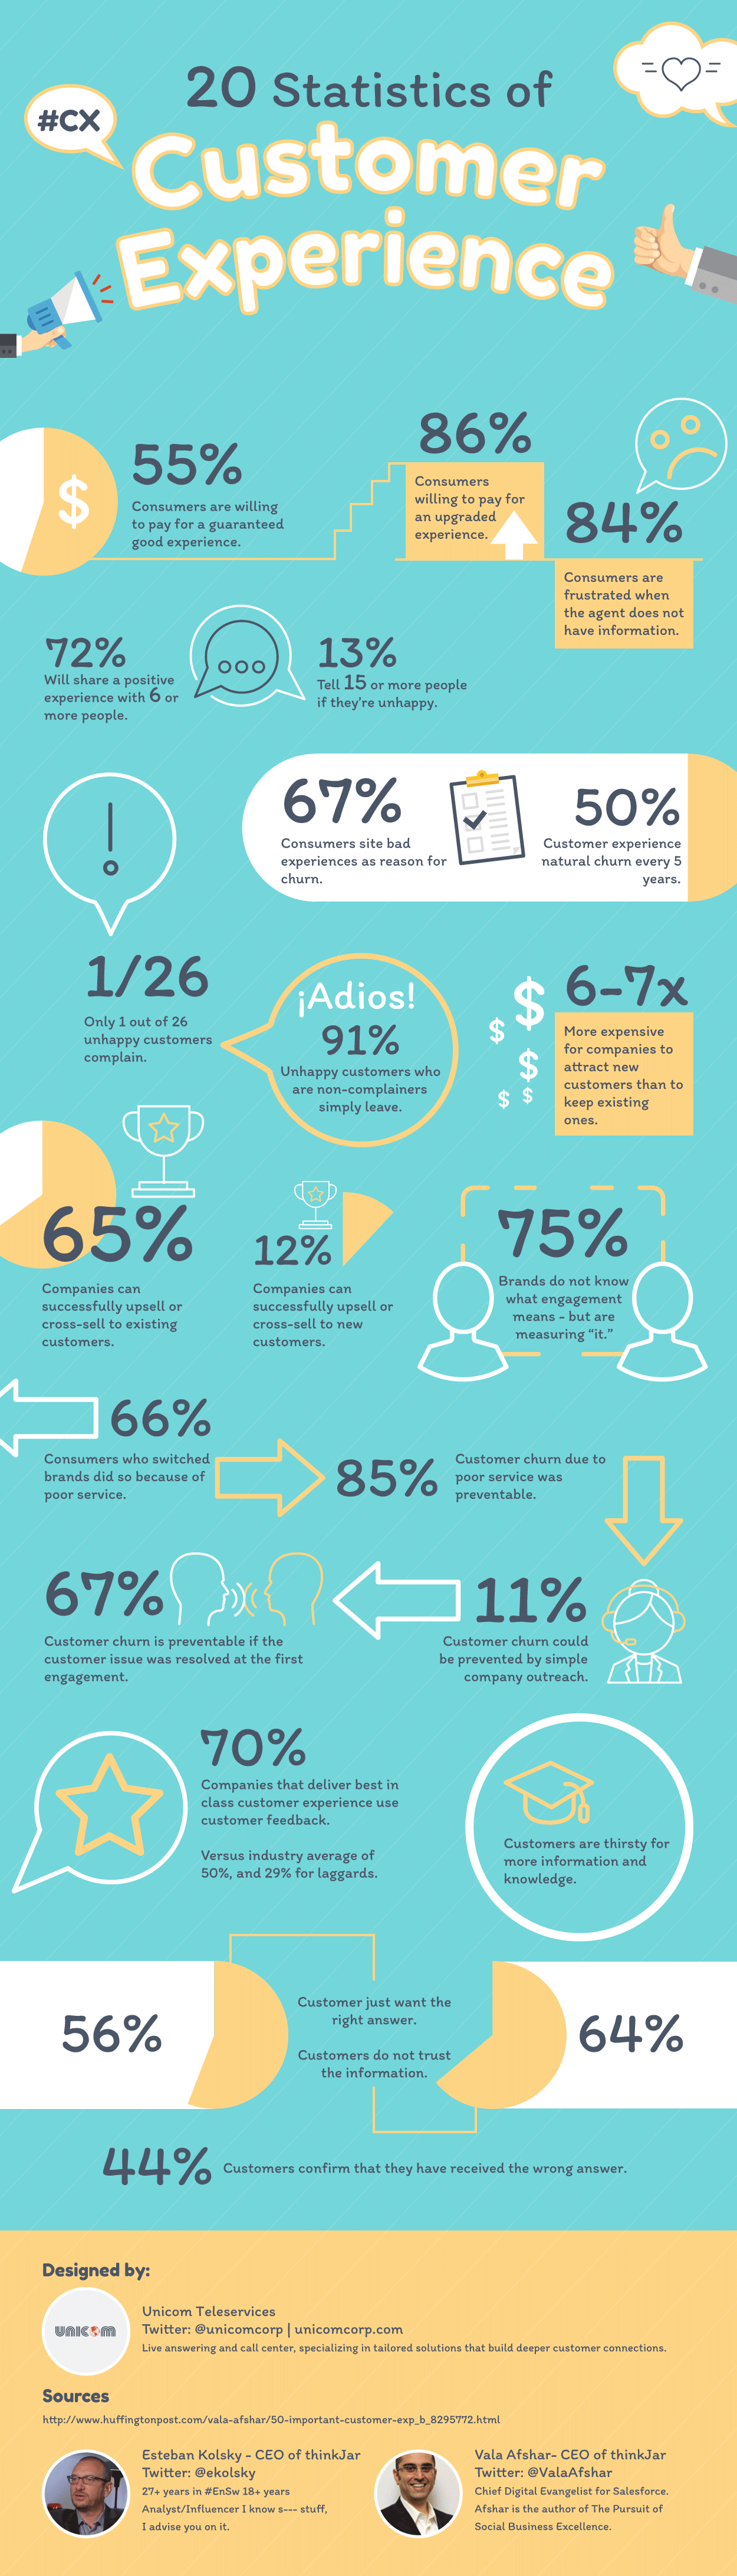 Statistic of Customer Experience Infographic